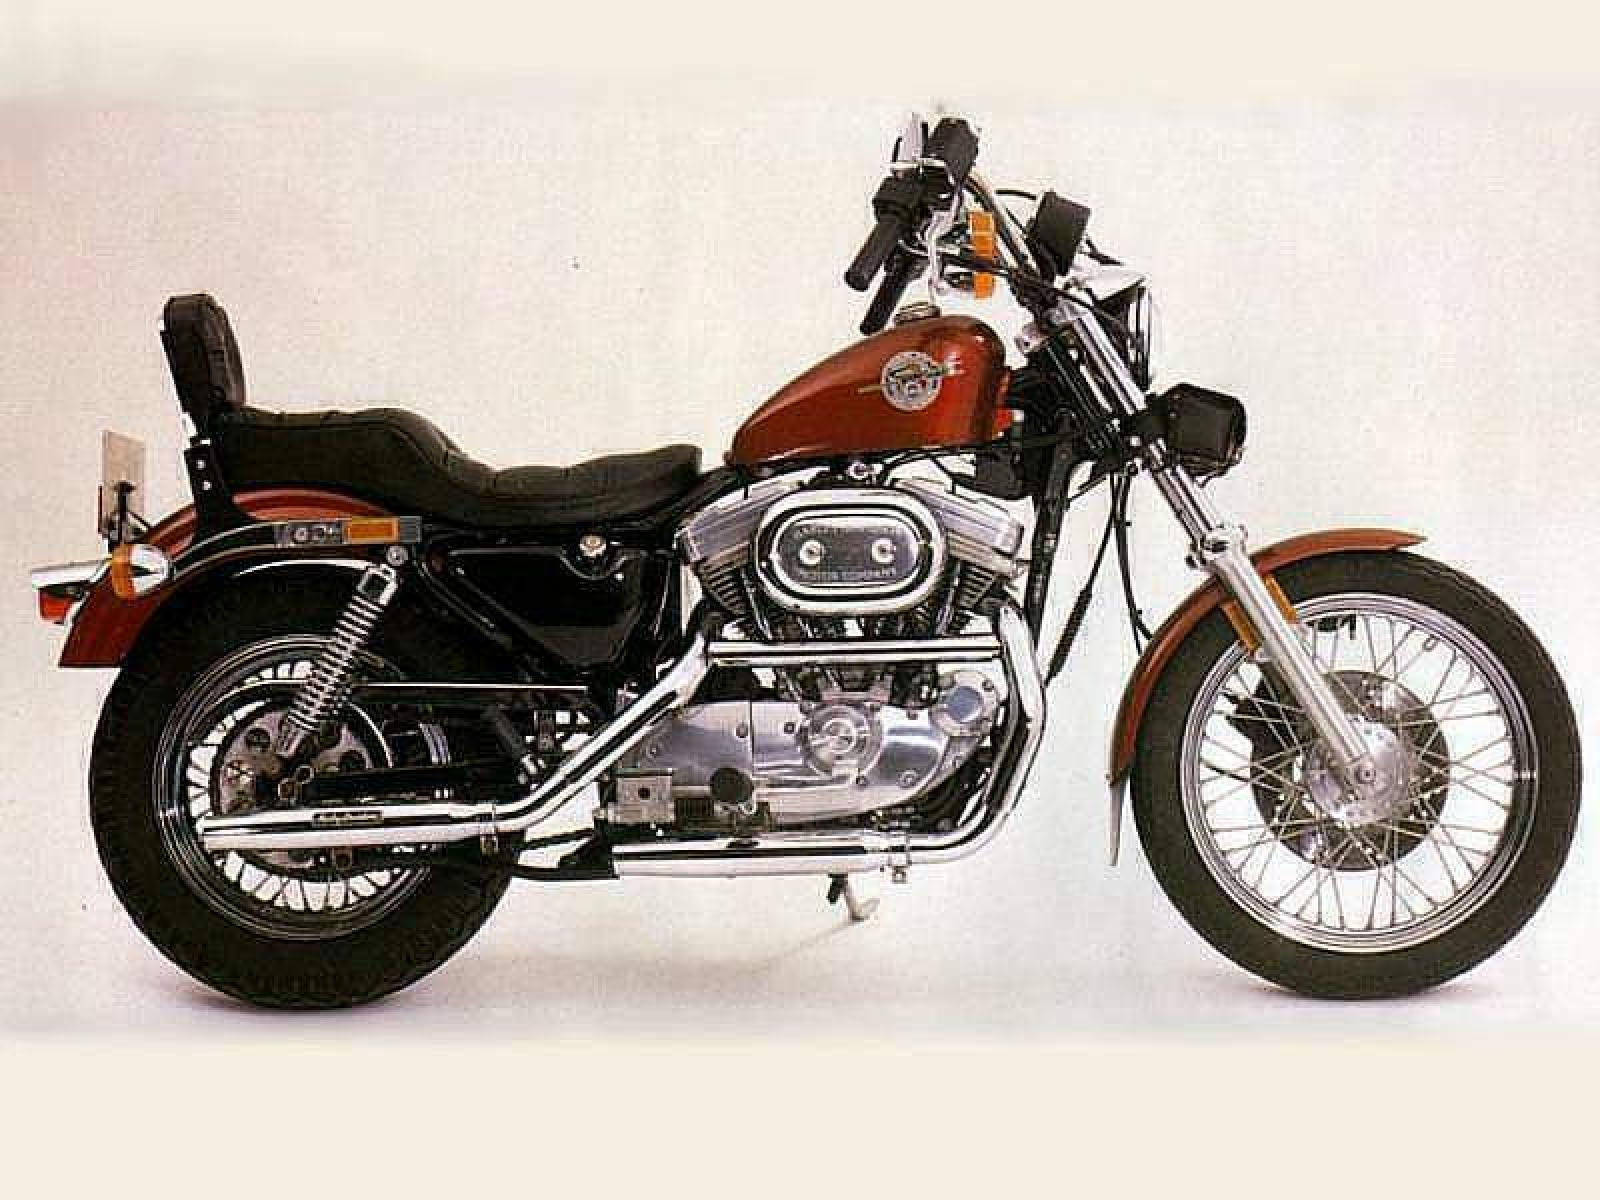 1991 harley davidson xlh sportster 883 standard moto. Black Bedroom Furniture Sets. Home Design Ideas